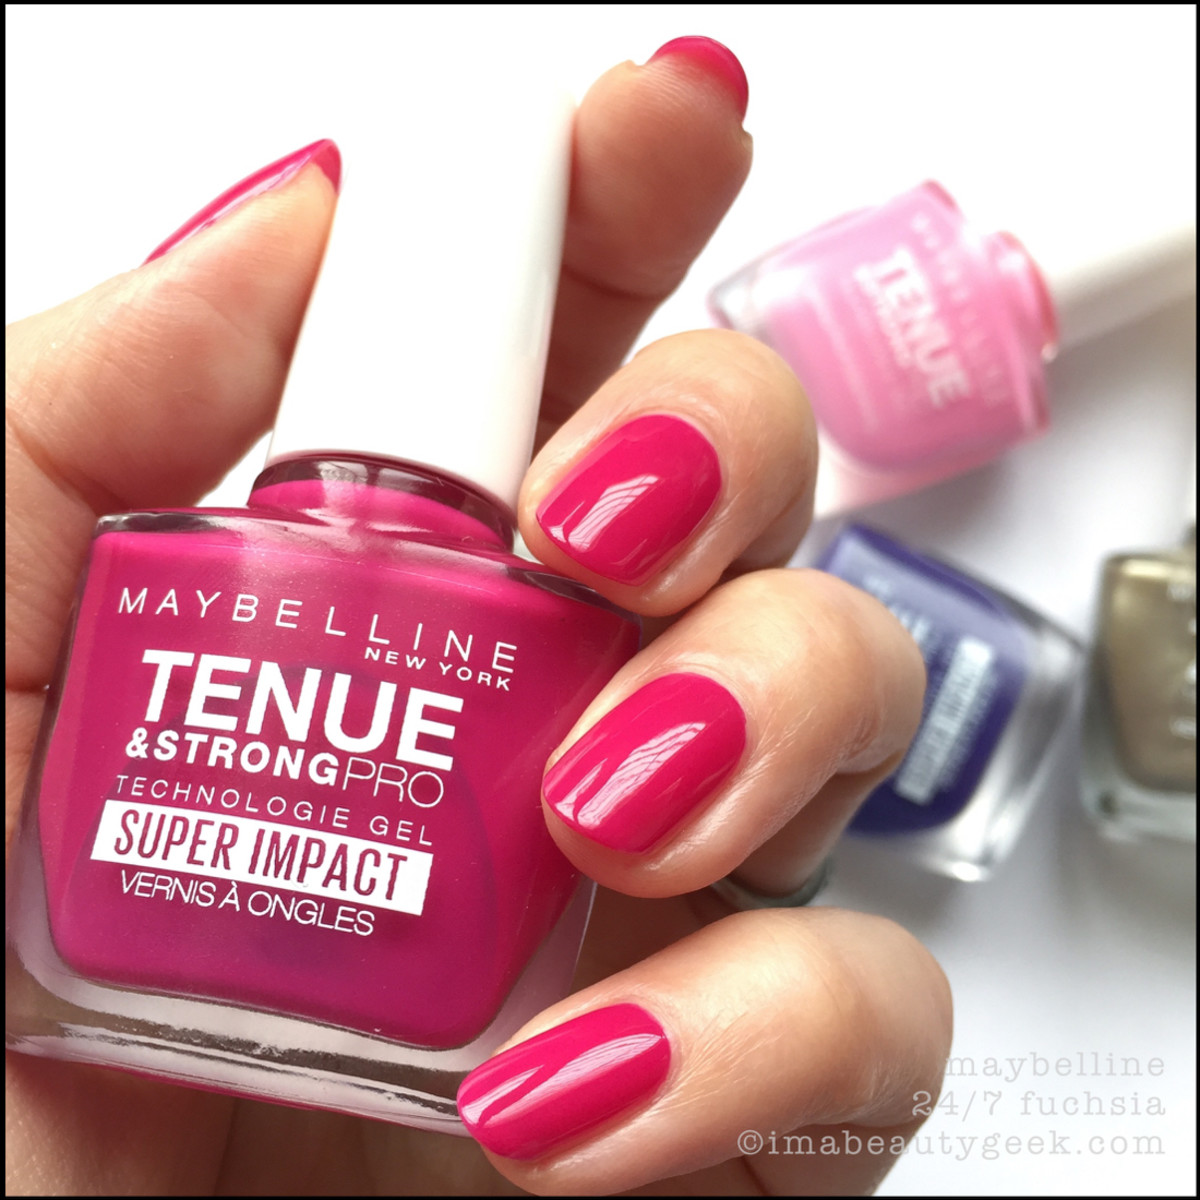 Maybelline 24/7 Fuchsia Tenue Strong Pro Nail Polish